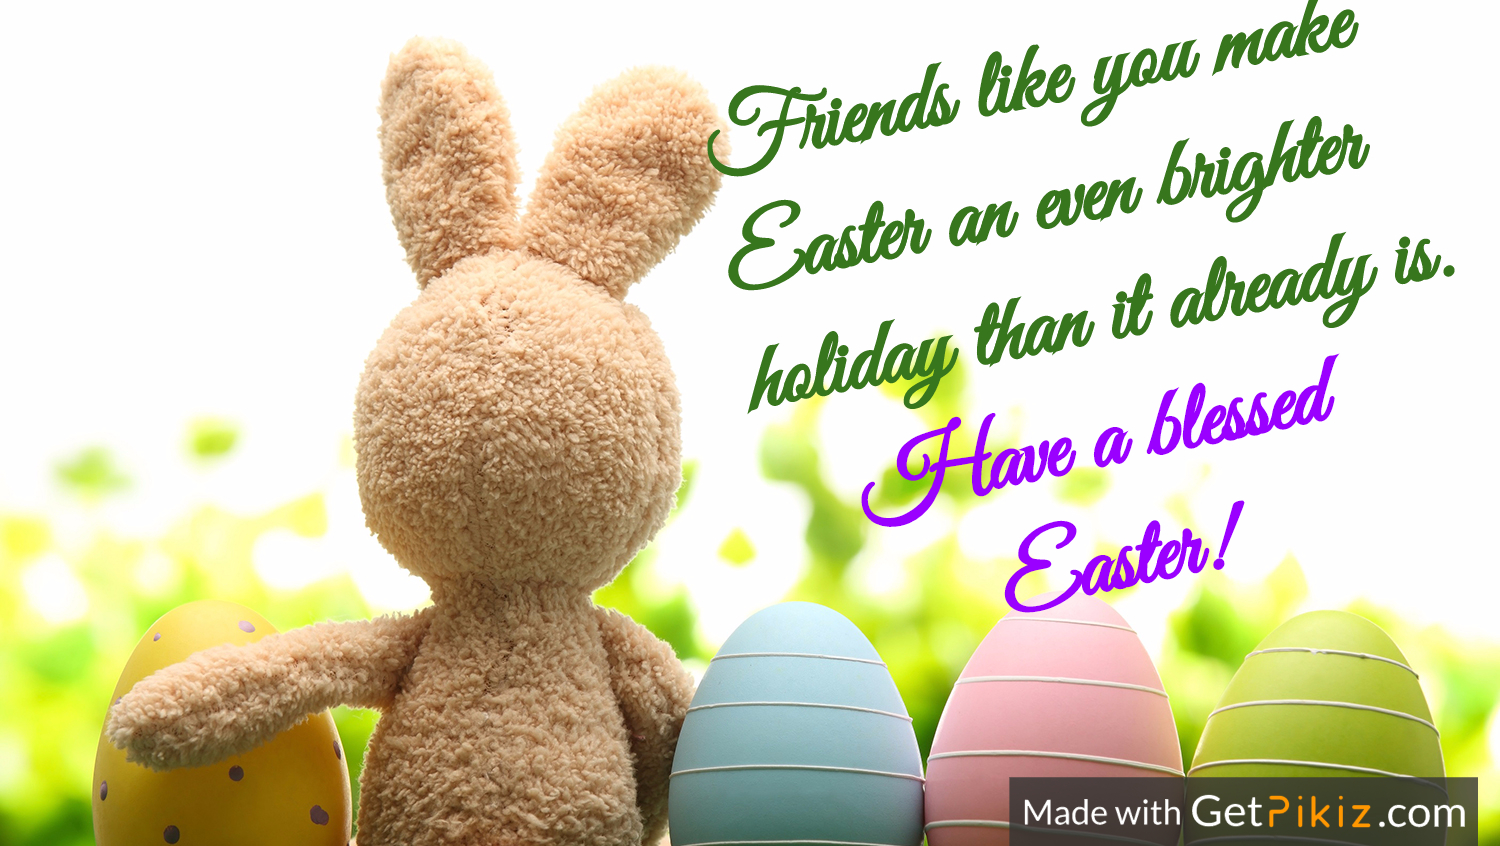 Friends like you make Easter an even brighter holiday than it already is. Have a blessed Easter!